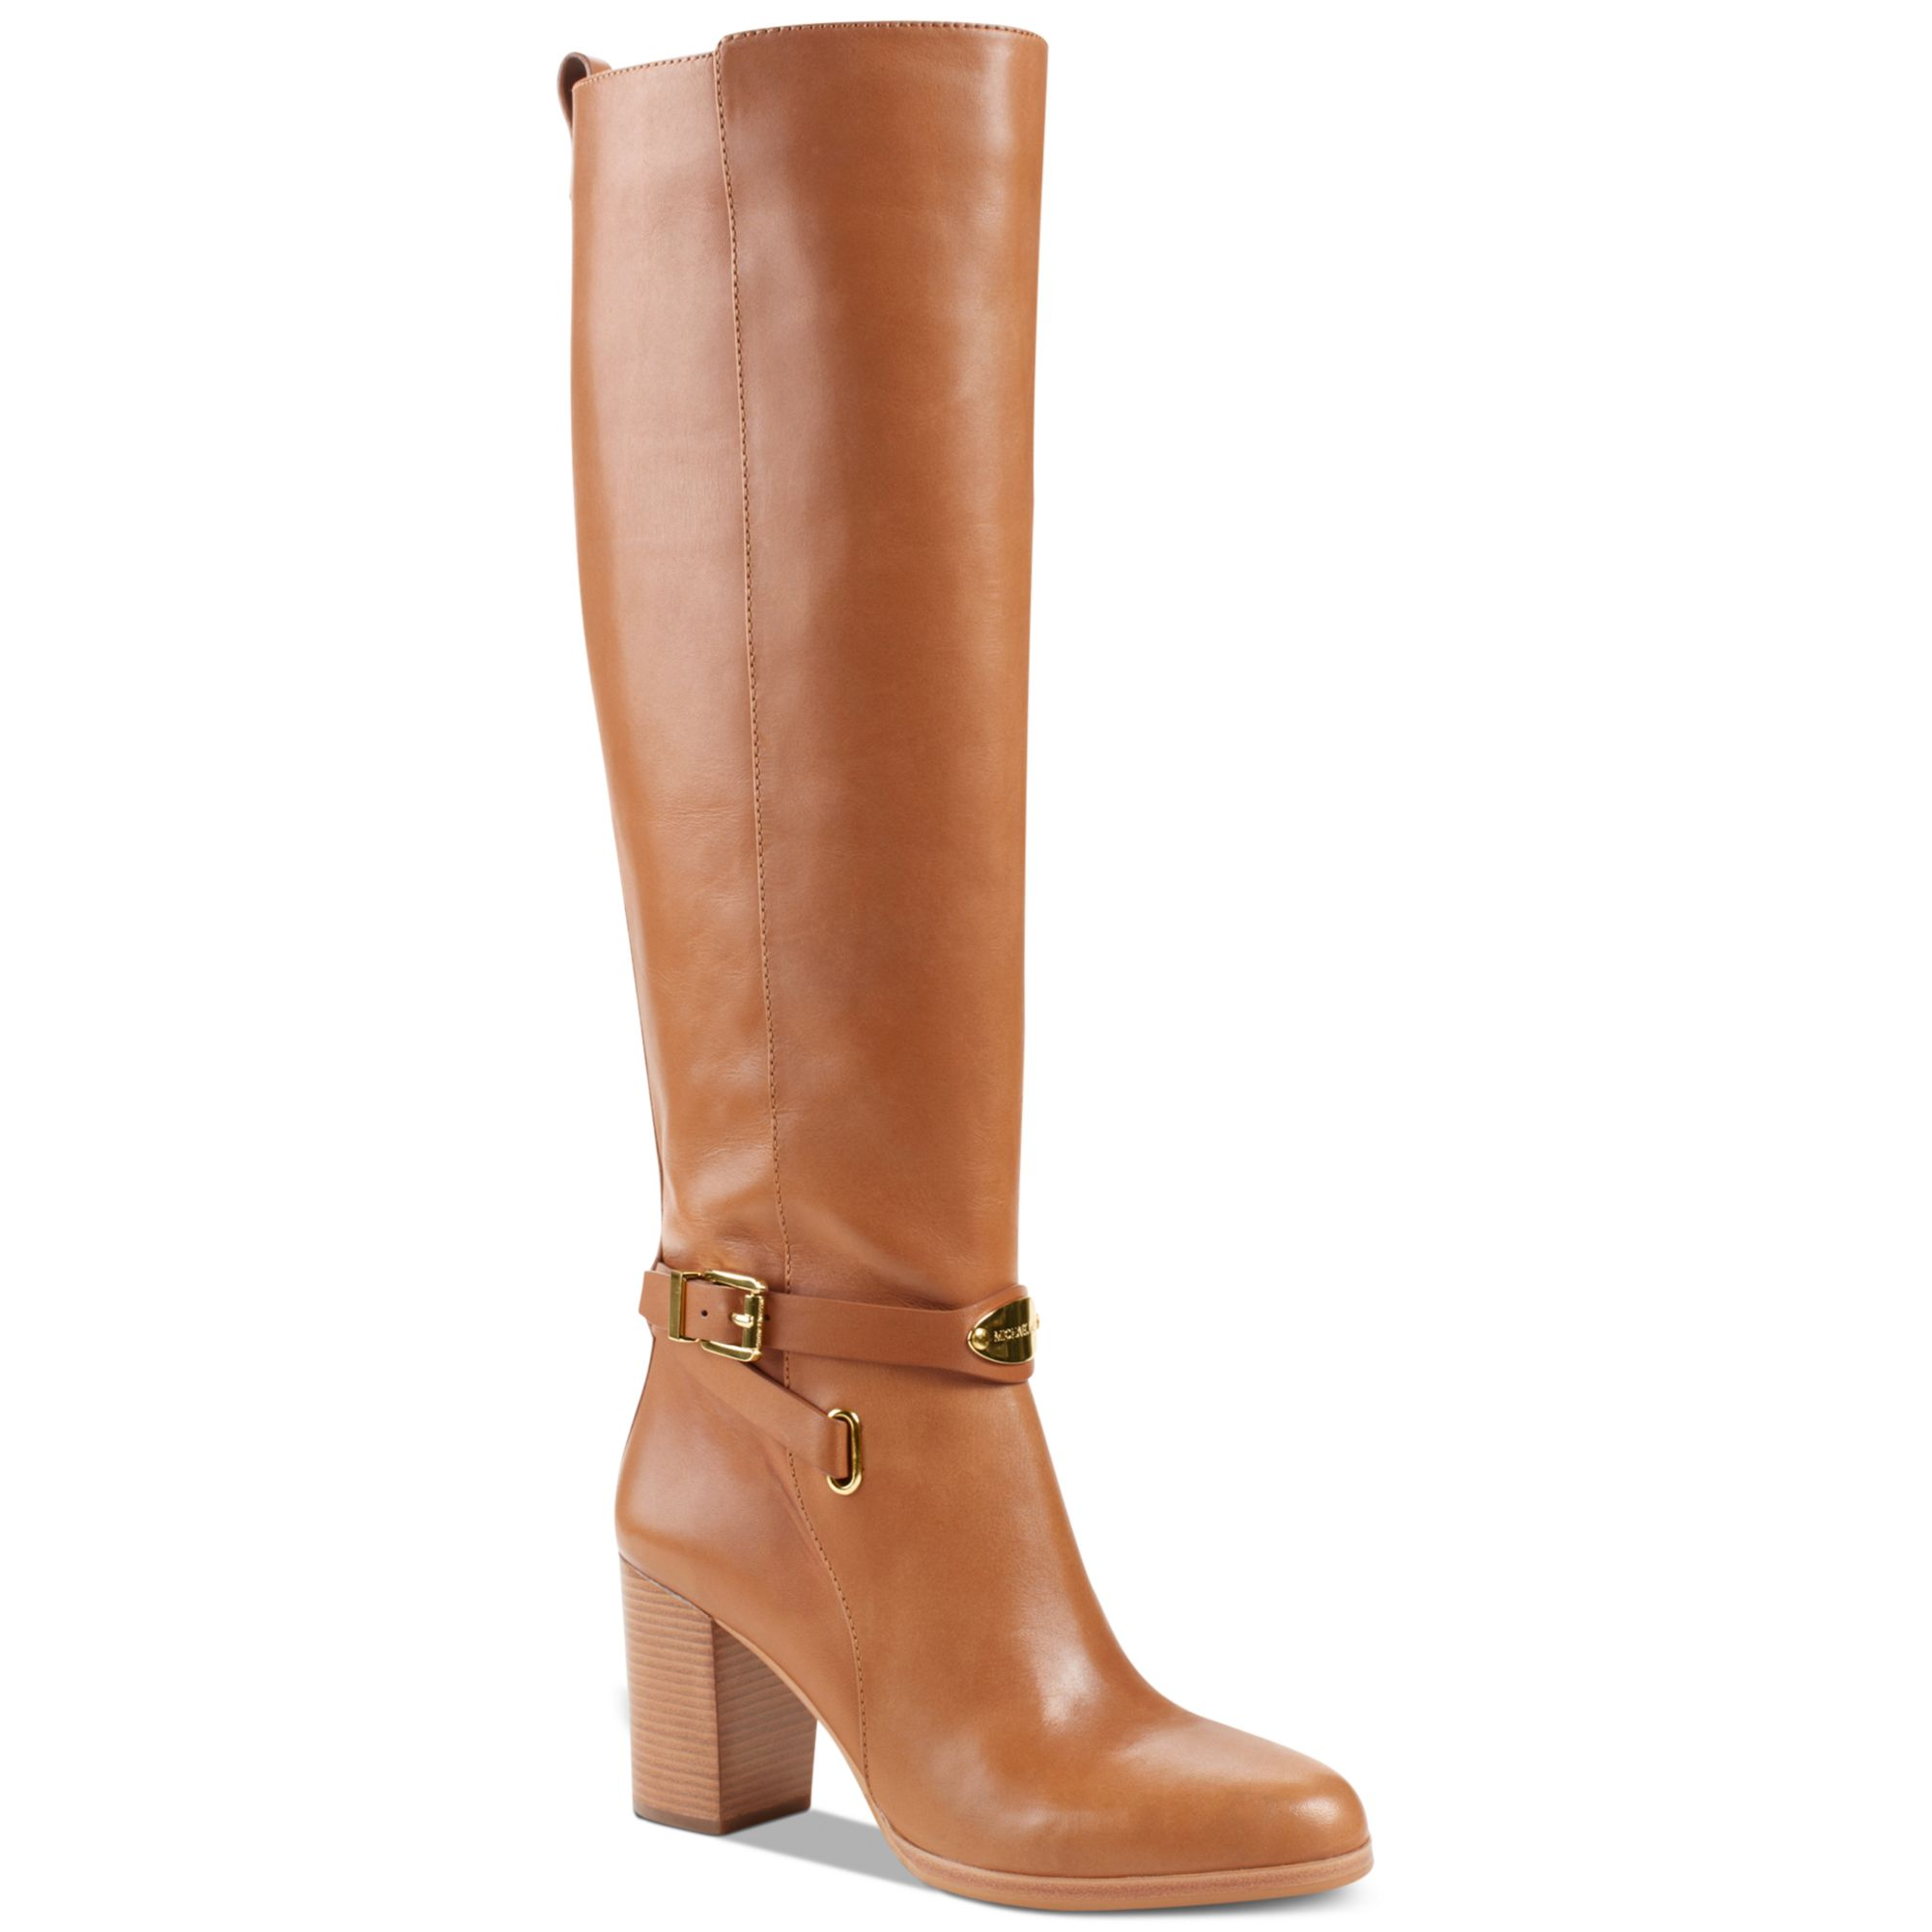 f6cf035ea36 Lyst - Michael Kors Arley Boots in Metallic